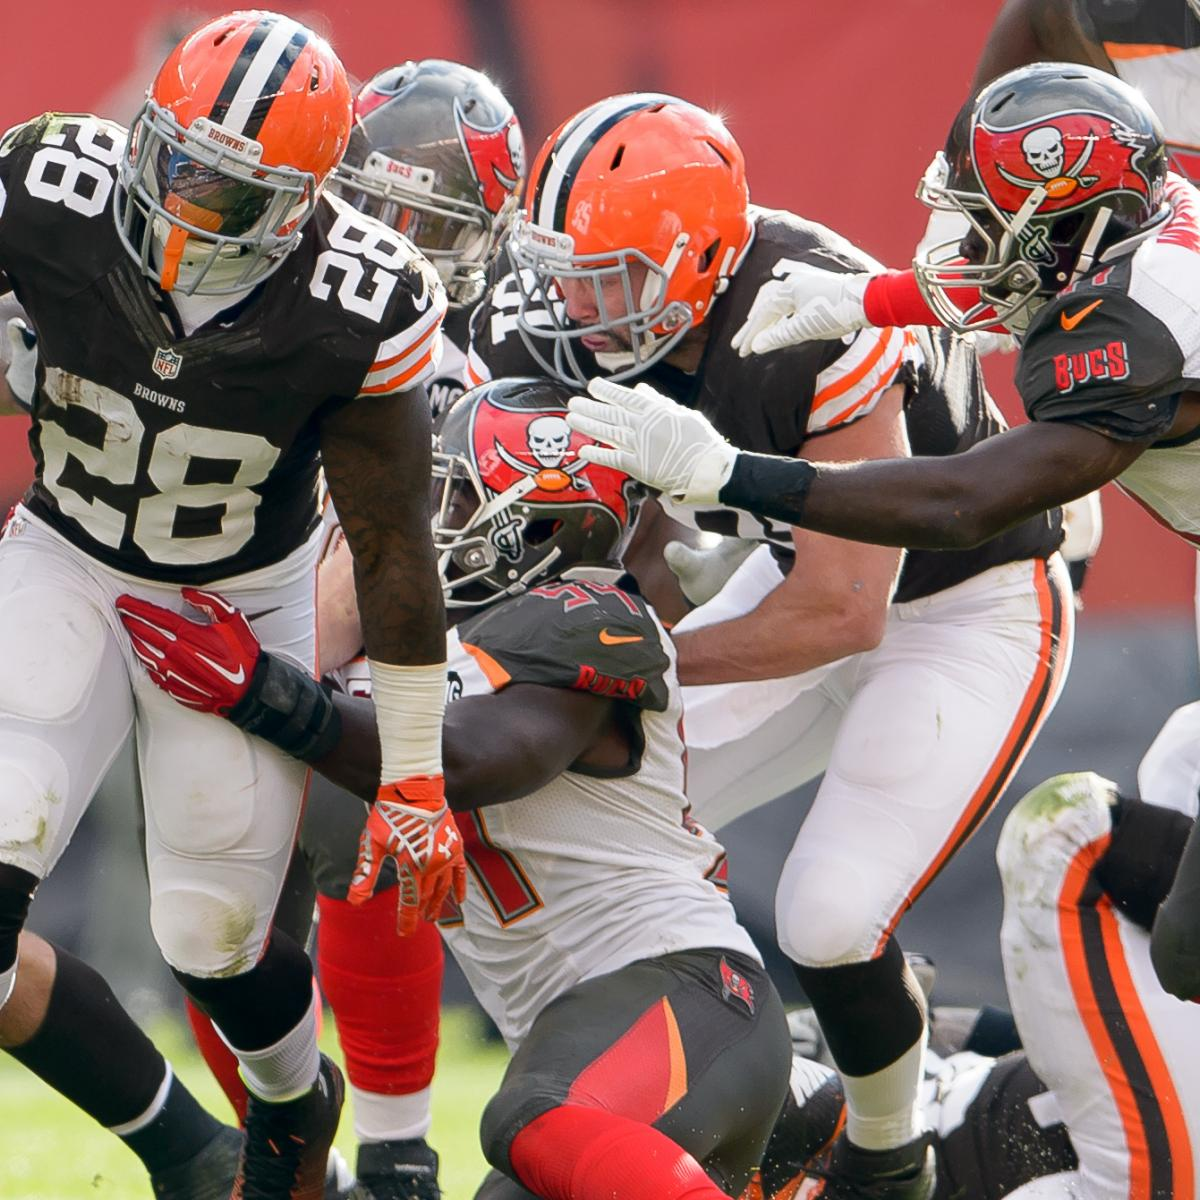 Cleveland Browns trade rumors and news from the best local newspapers and sources